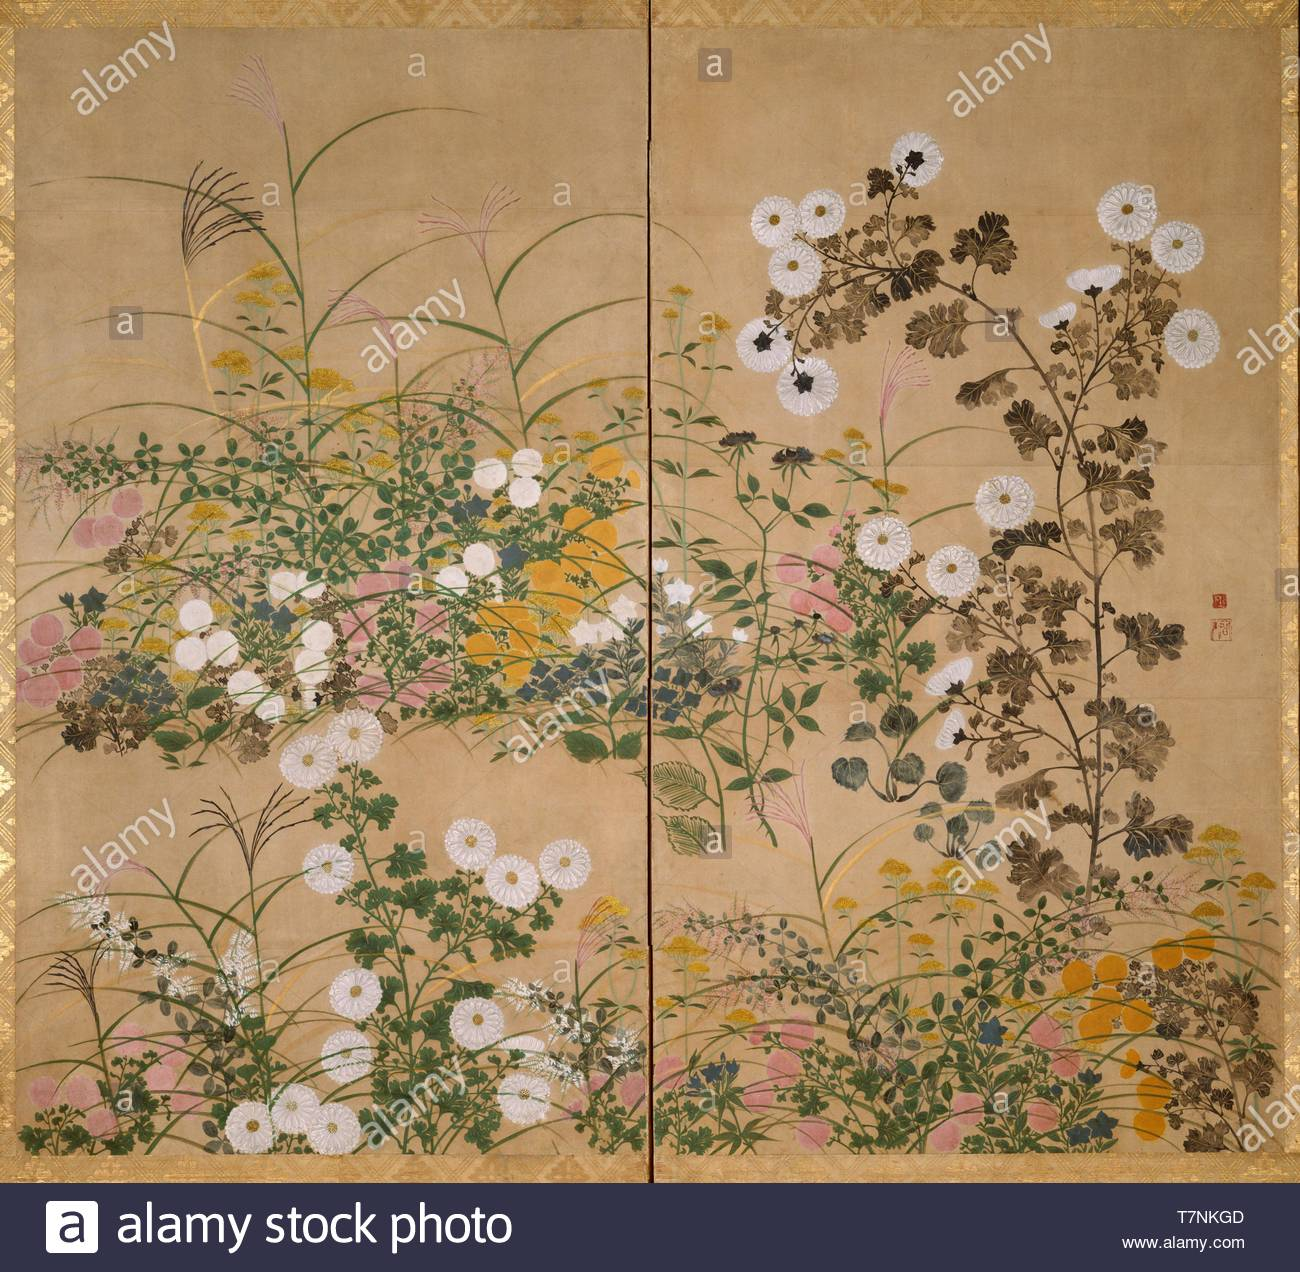 Ogata-Korin-Important Art Object Flowering Plants in Autumn - Stock Image